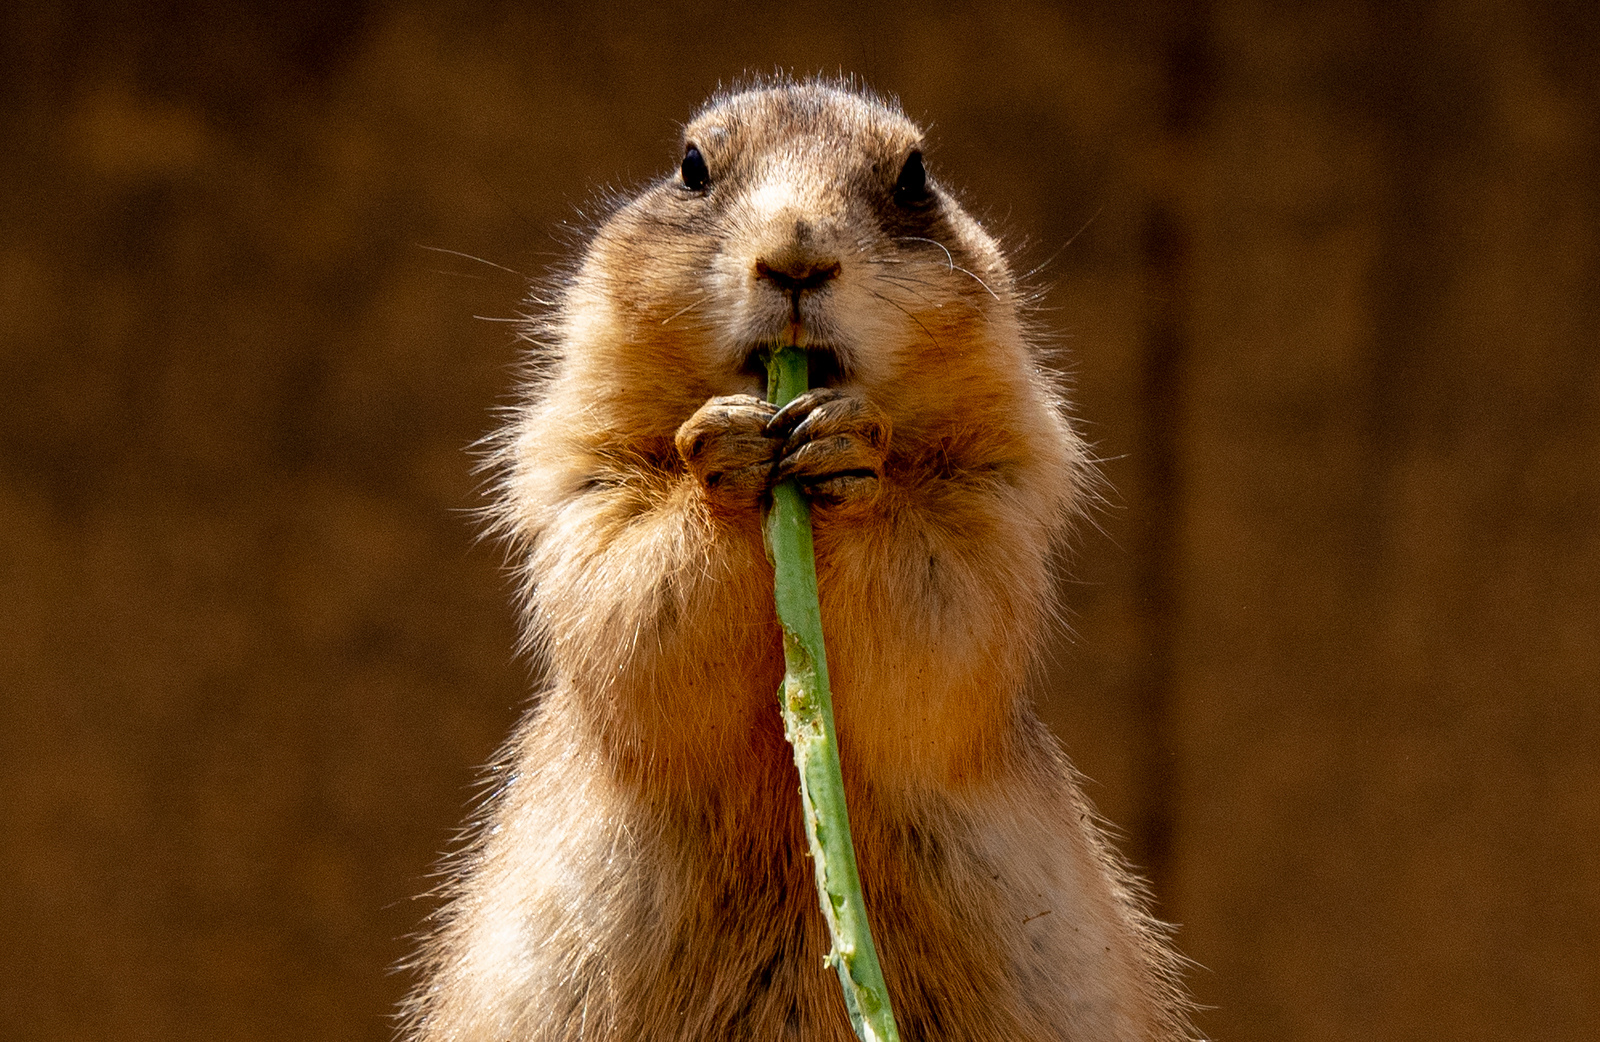 Prairie dogs infected with plague prompt officials to shut down parts of Denver - The Washington Post